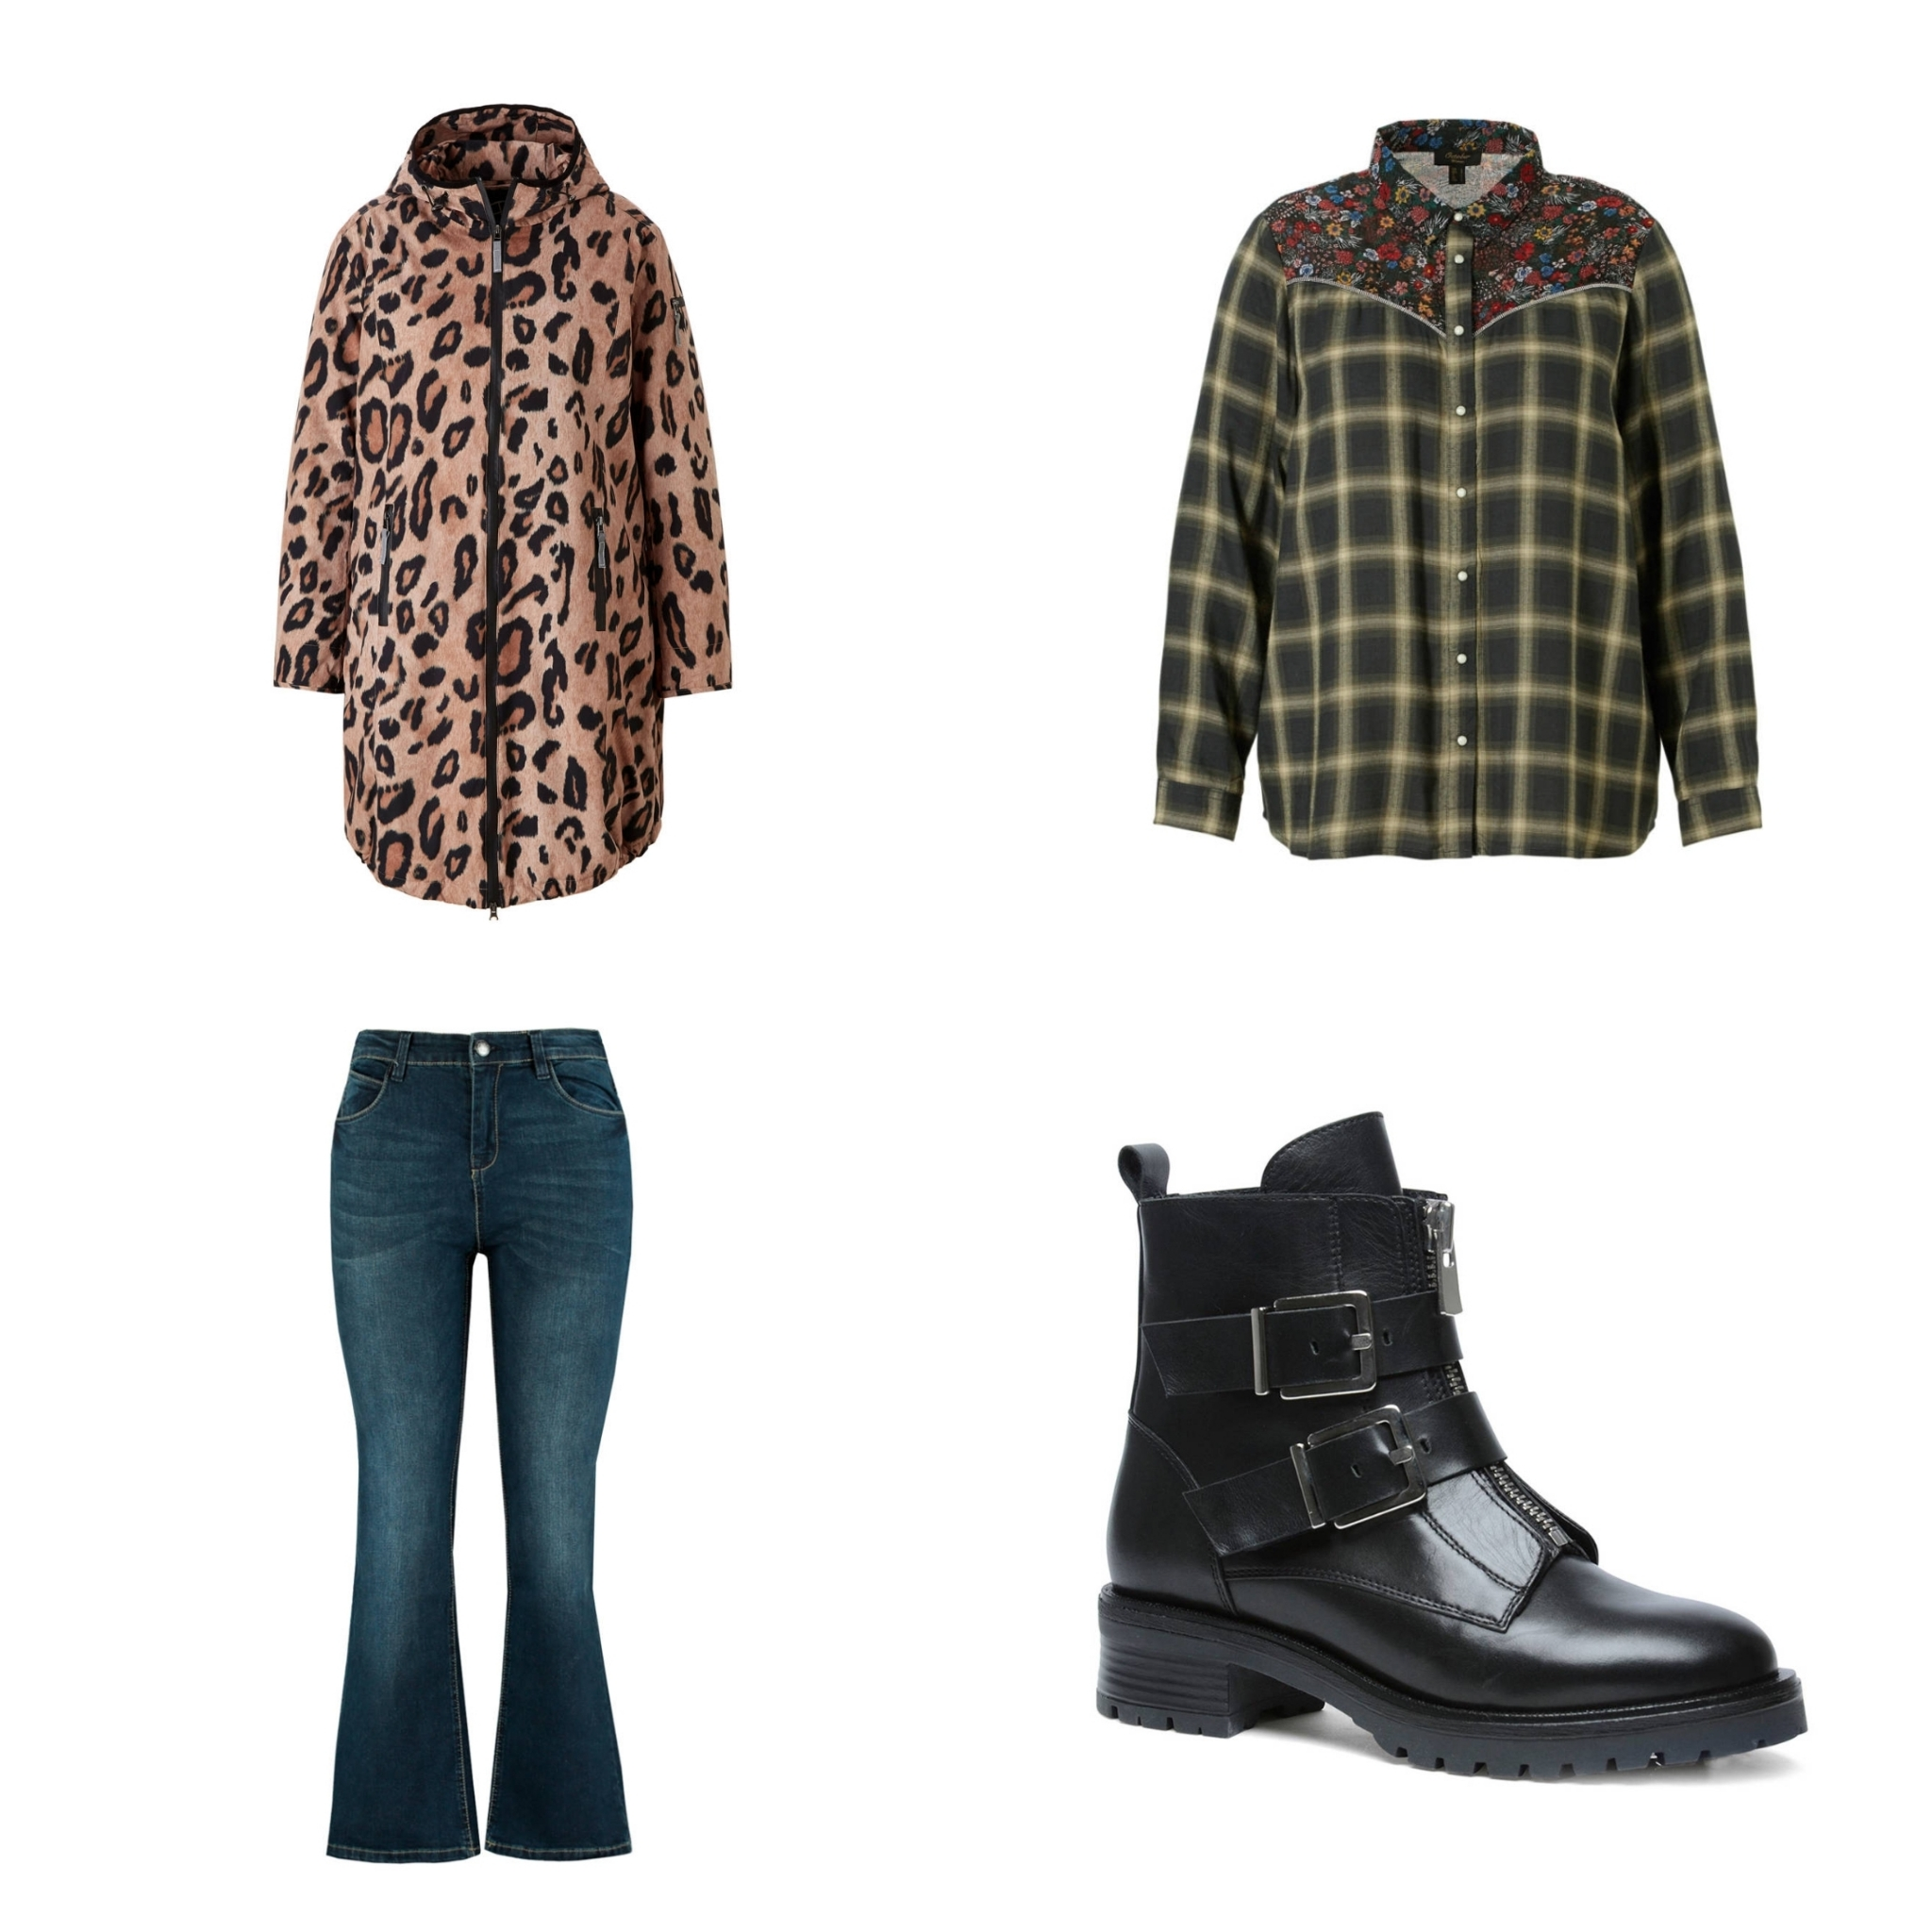 Winterjas Panterprint.Plus Size Fashion Friday Herfst Jassen Plus Een Beetje